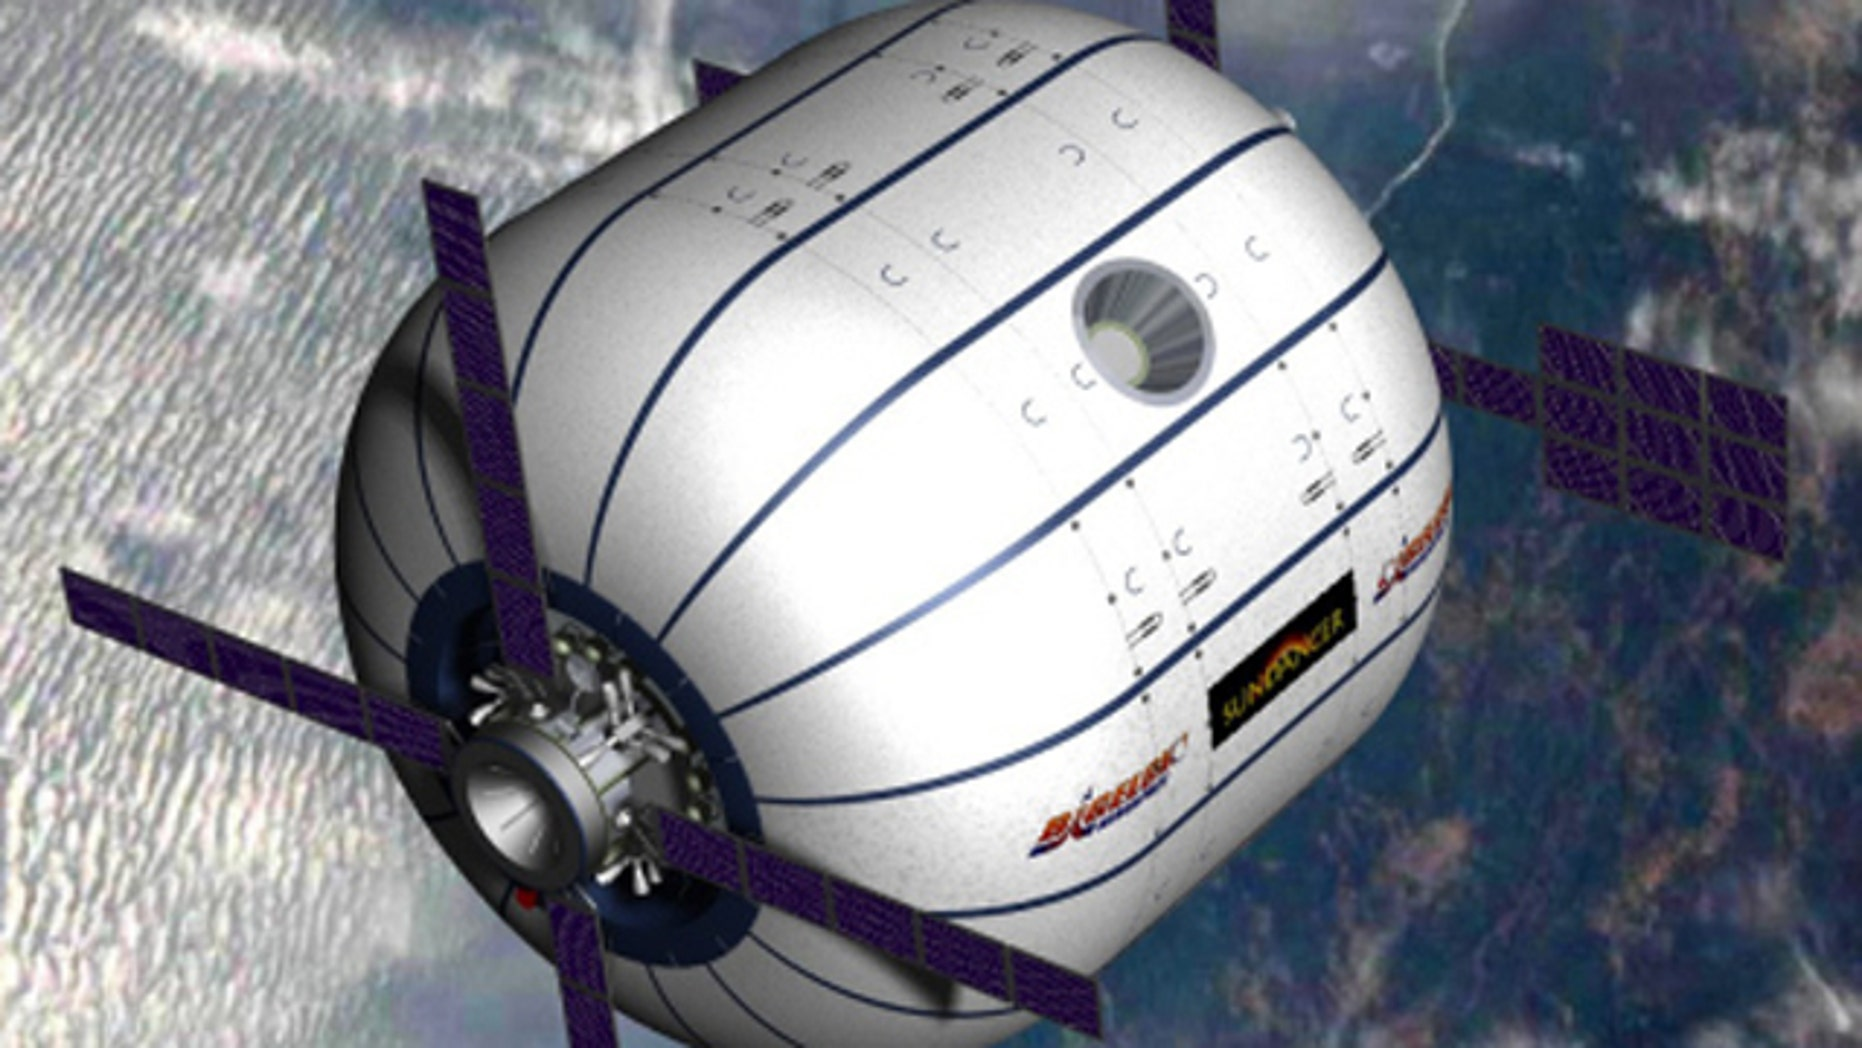 An artists conception of the Sundancer module in orbit, an inflatable space hotel being developed by Bigelow Aerospace.